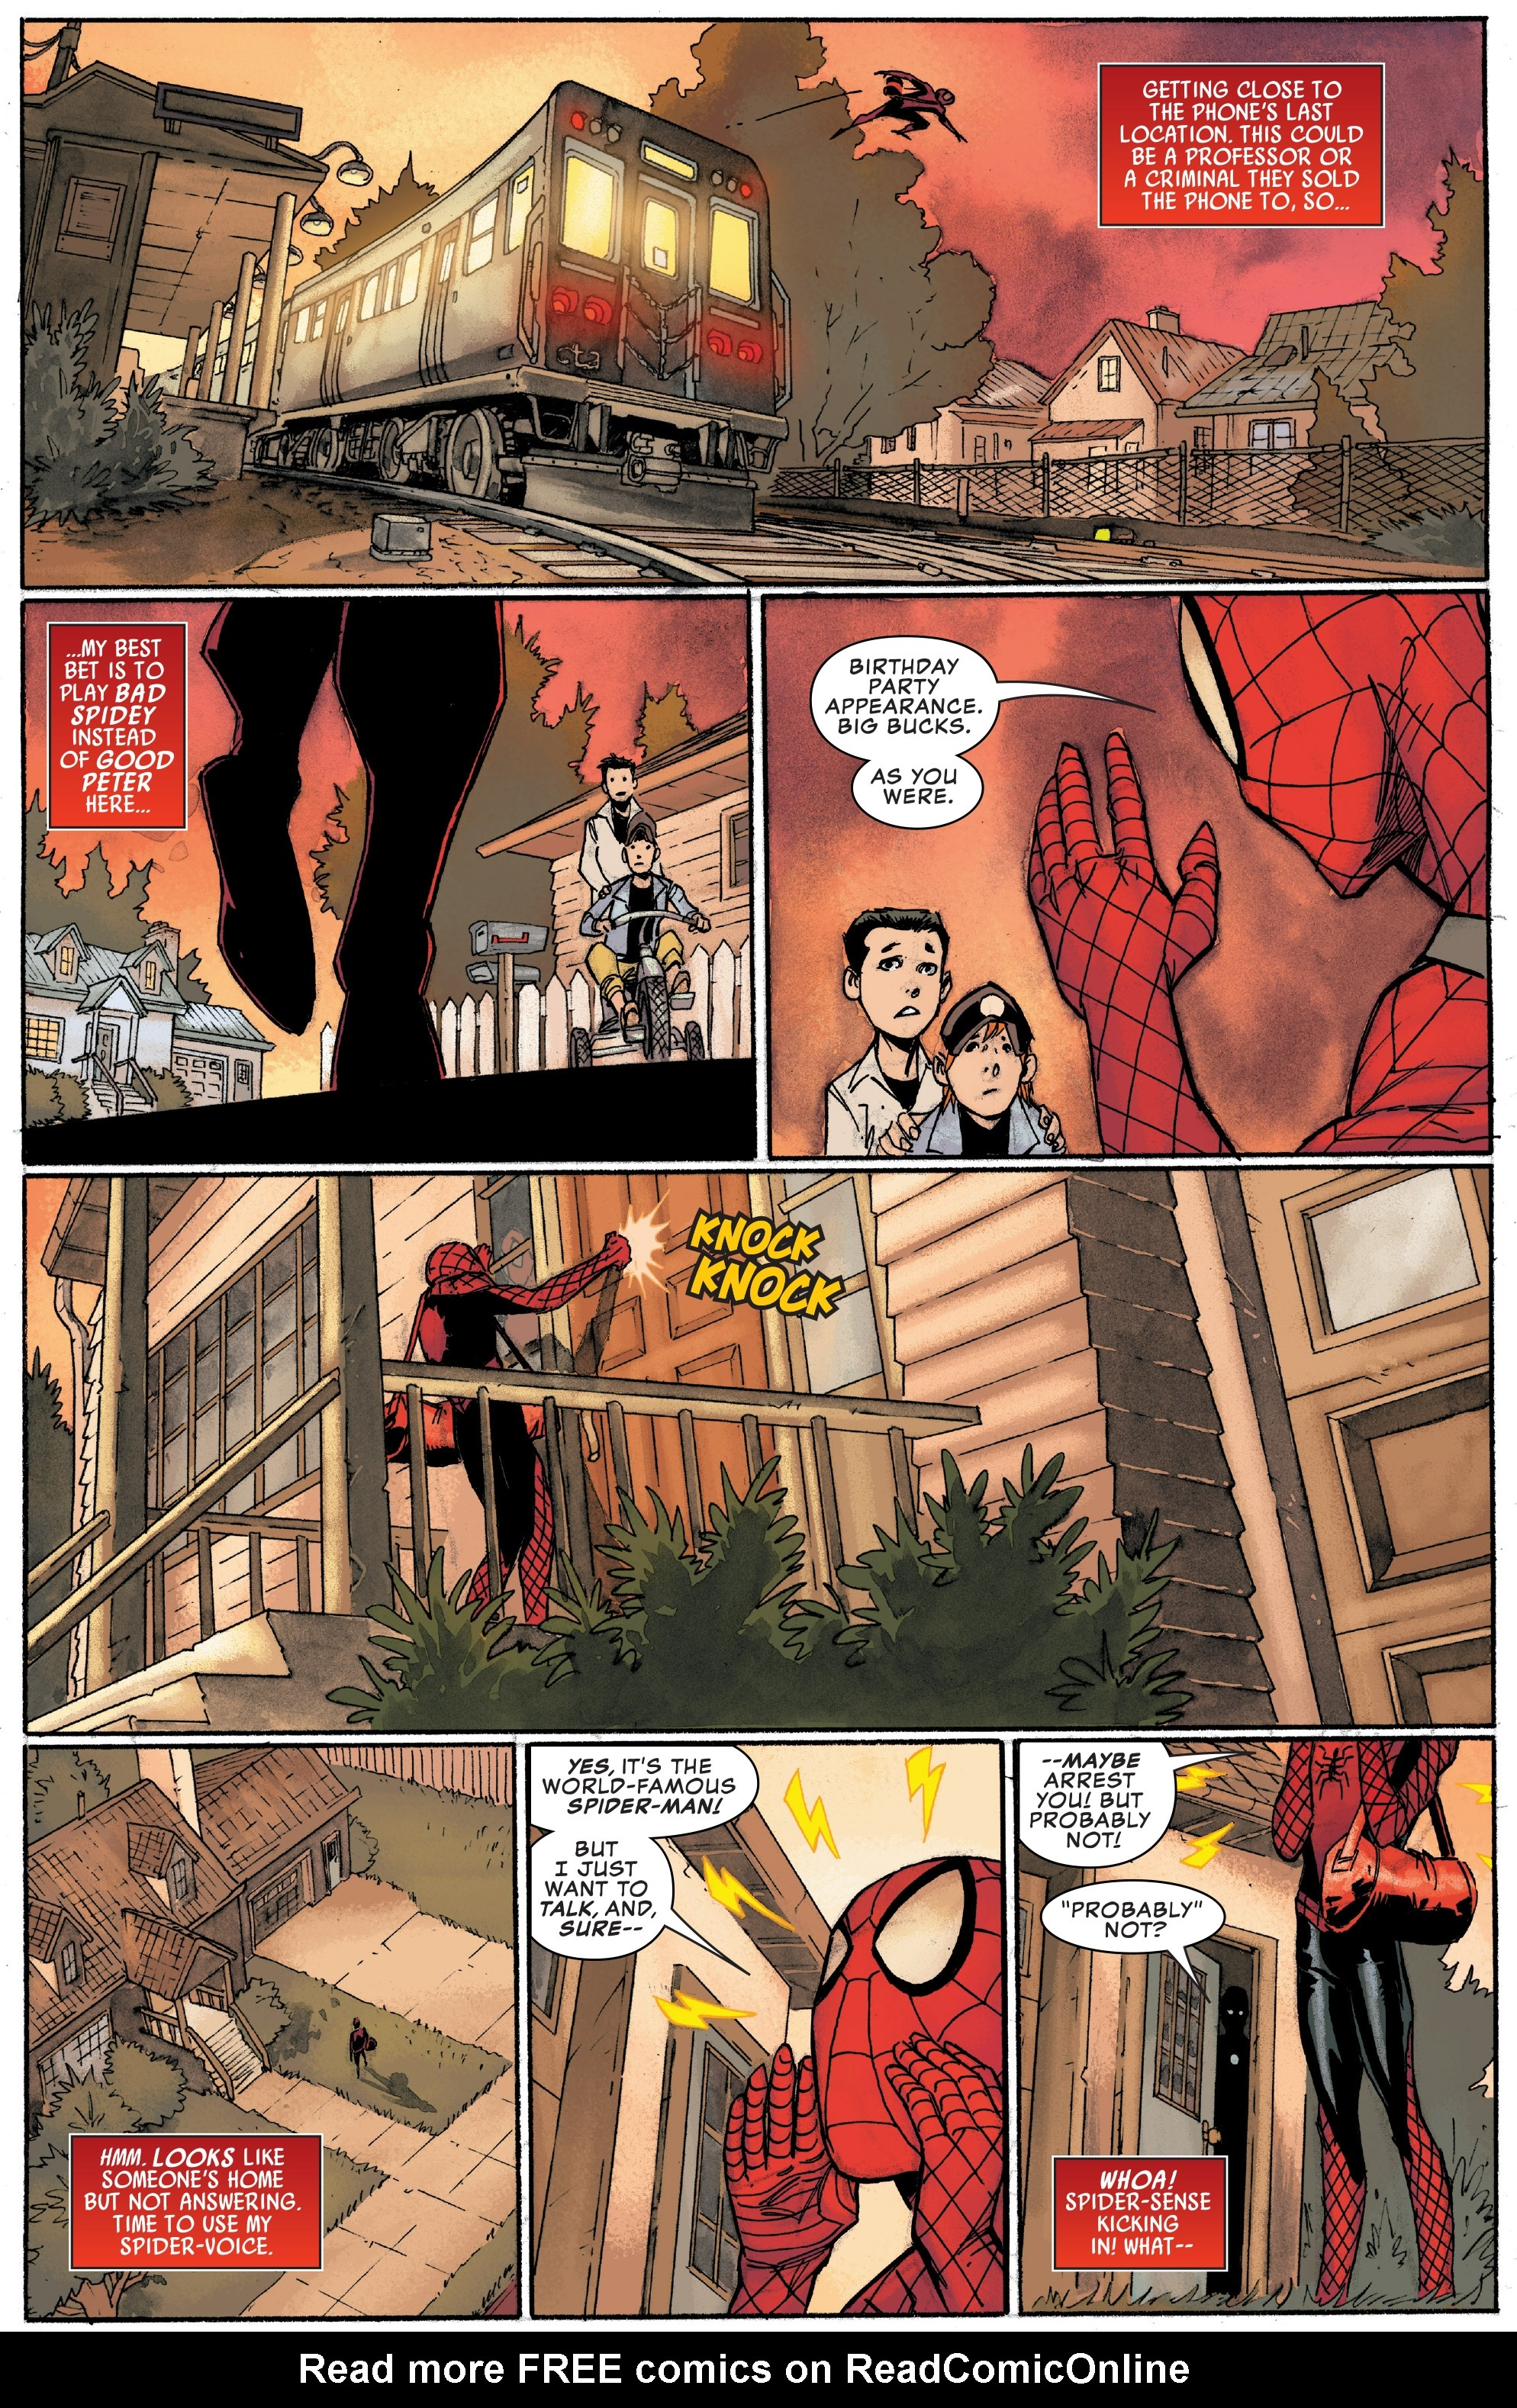 Read online Peter Parker: The Spectacular Spider-Man comic -  Issue #1 - 16